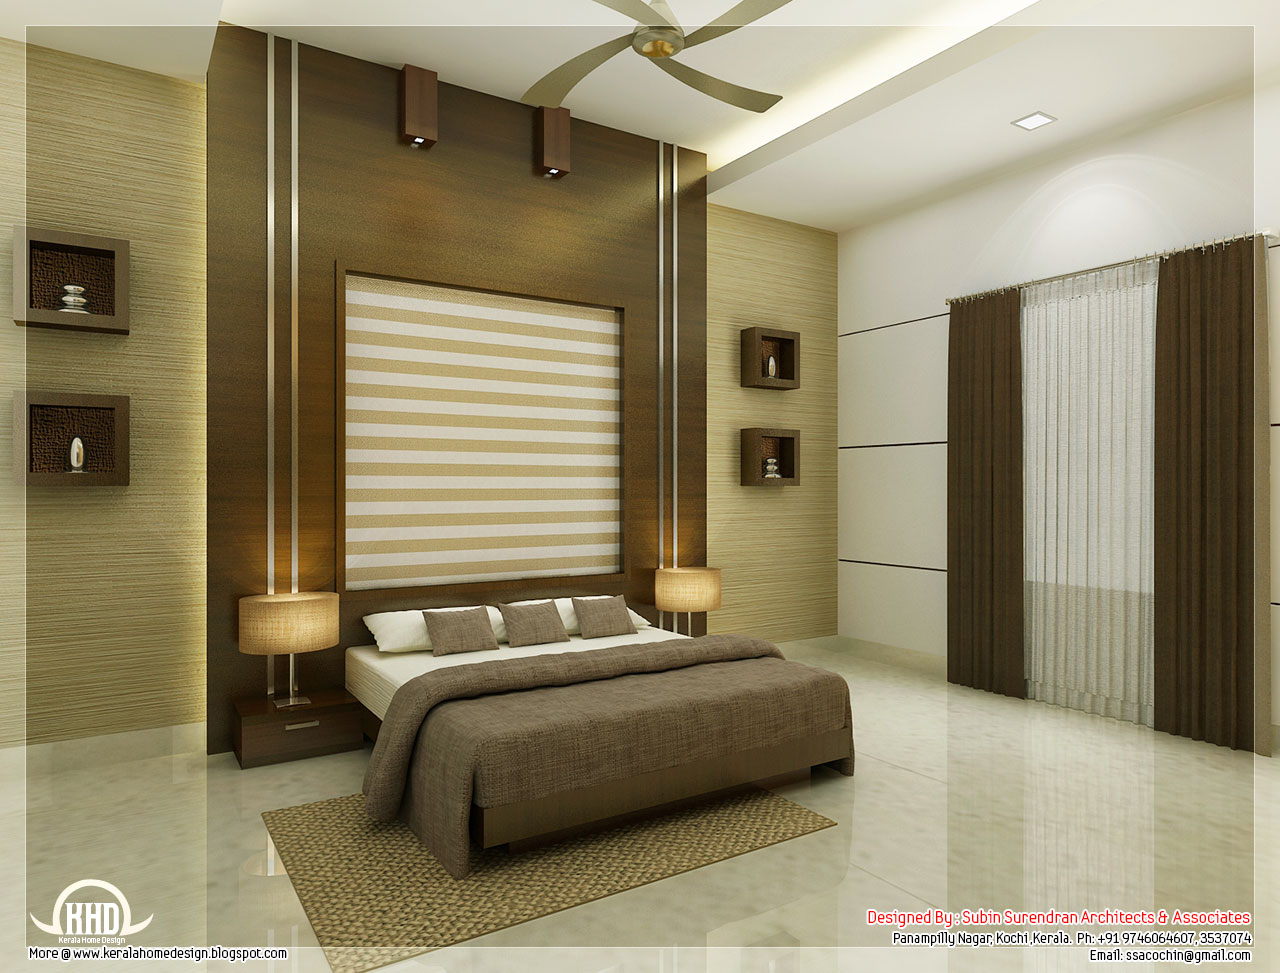 Beautiful bedroom interior designs kerala home design for Home interior design ideas wallpapers